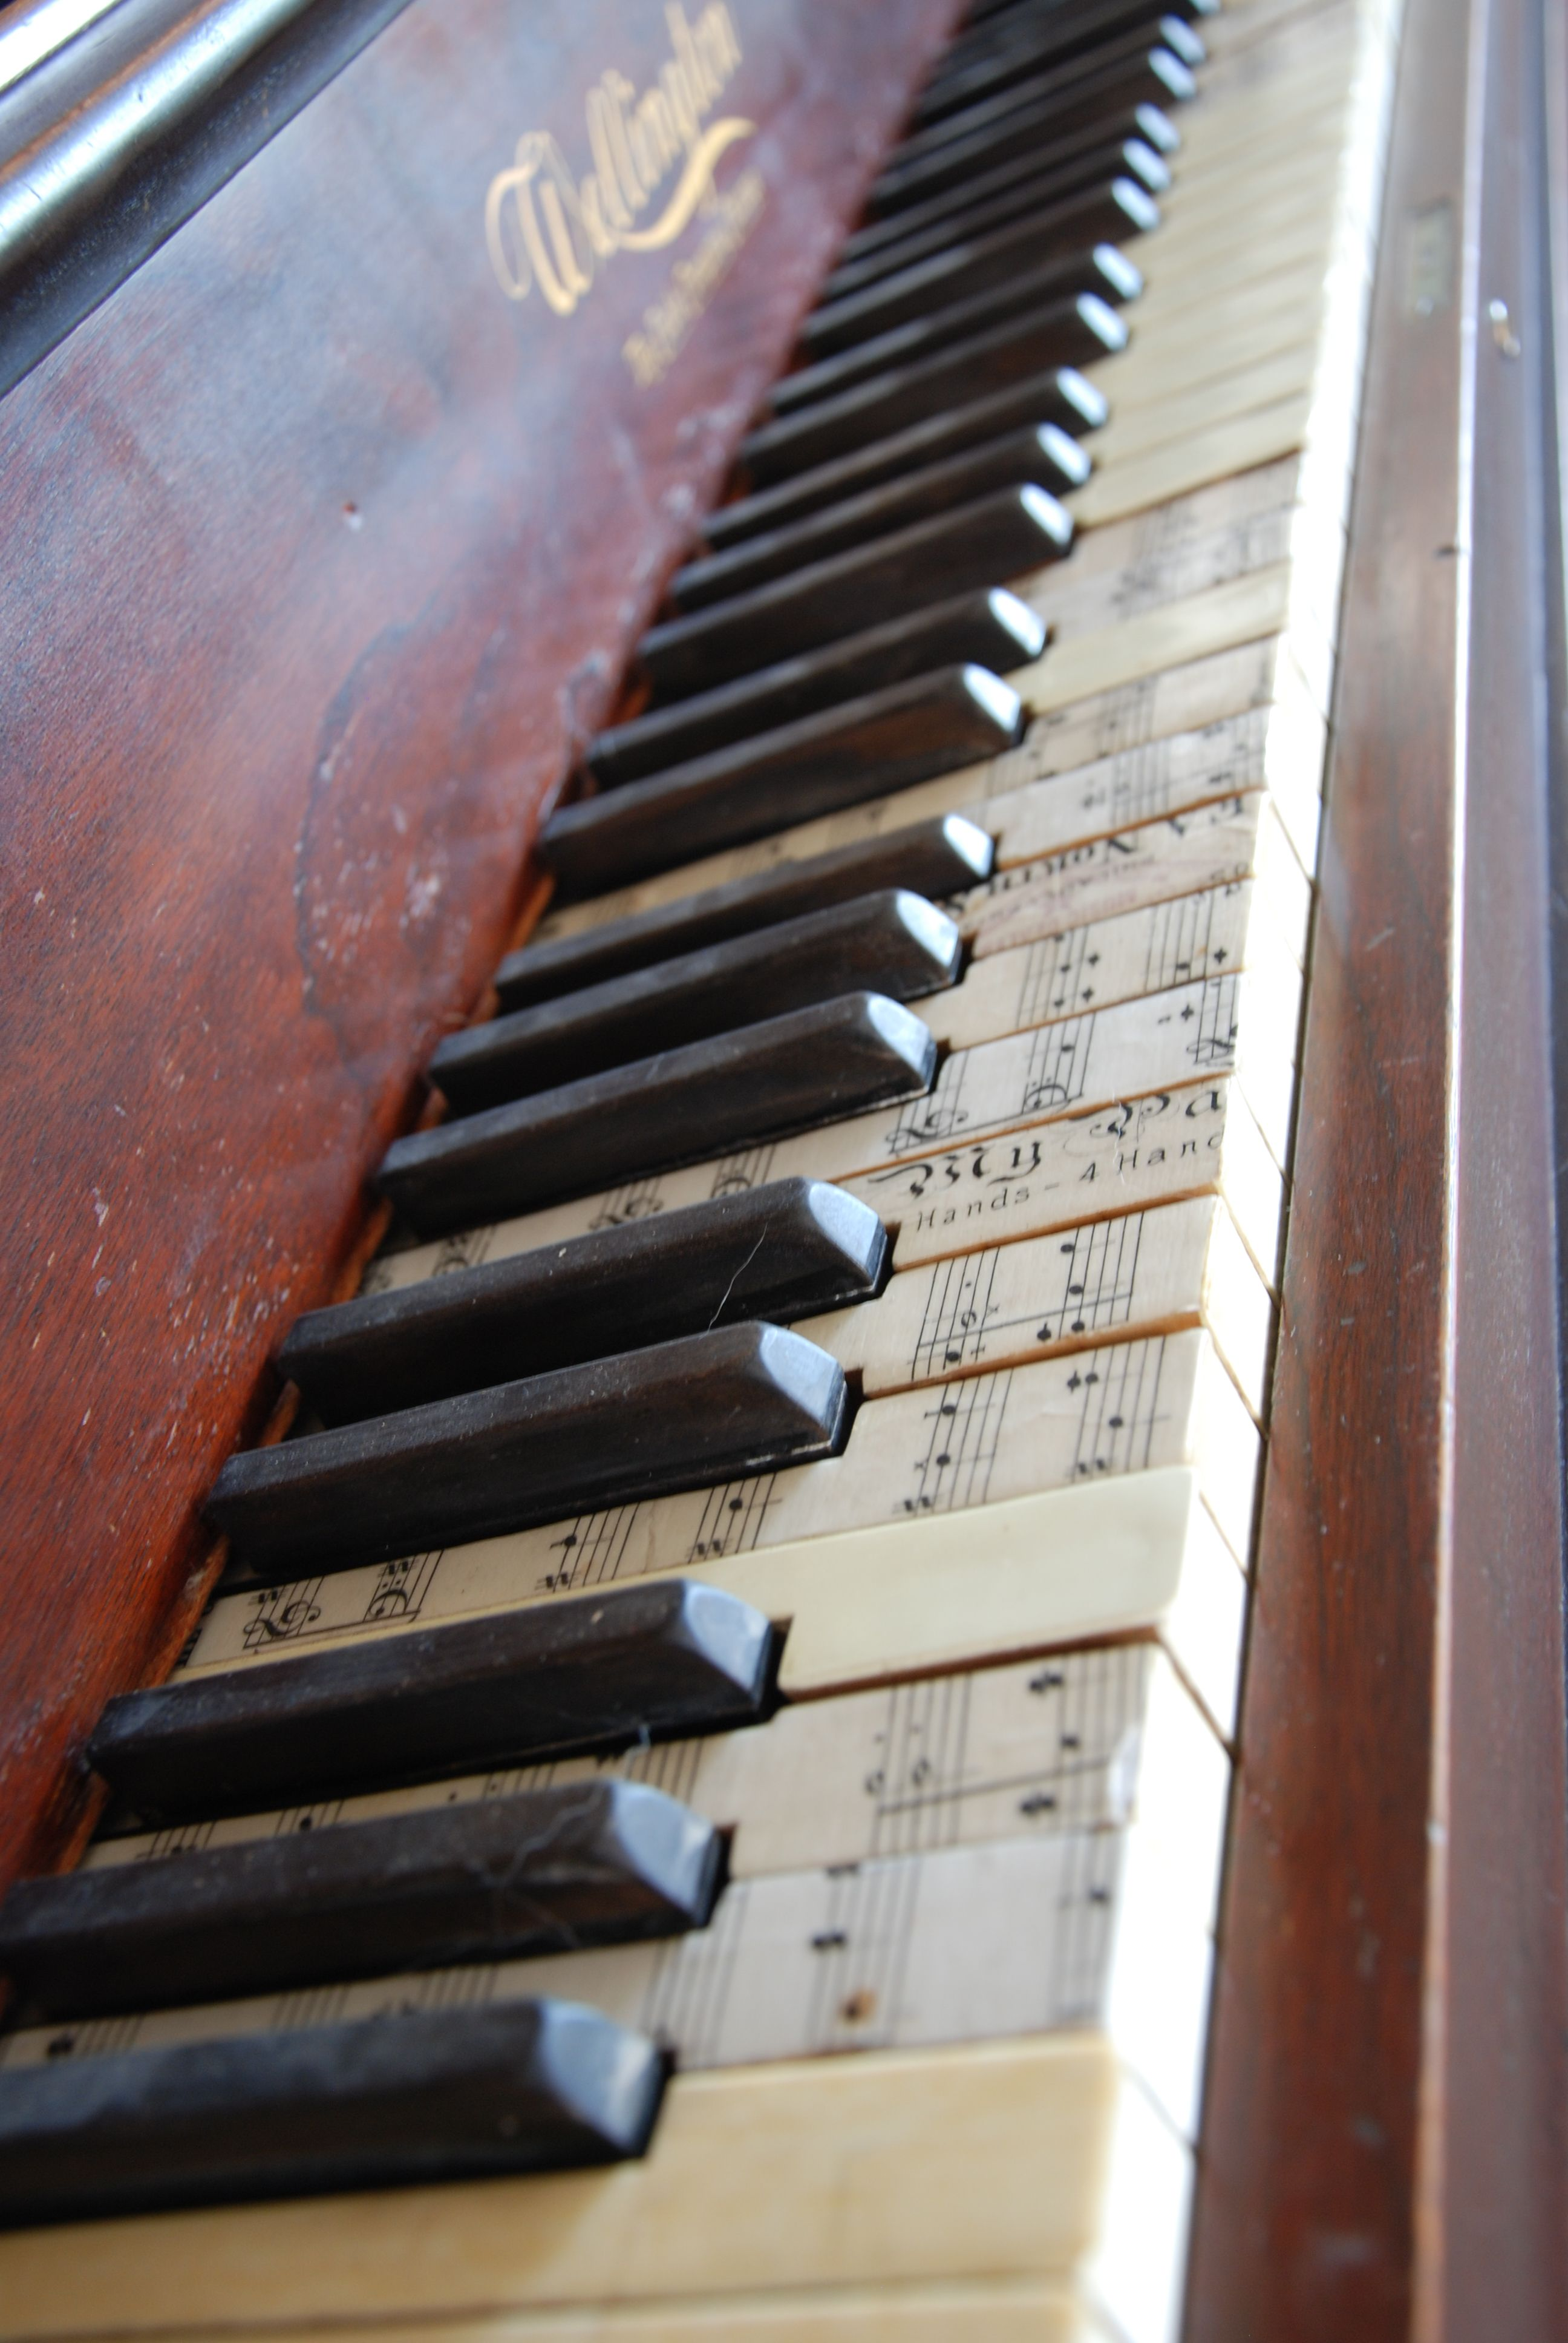 Found this beat up piano for free on Craigslist  Gave the